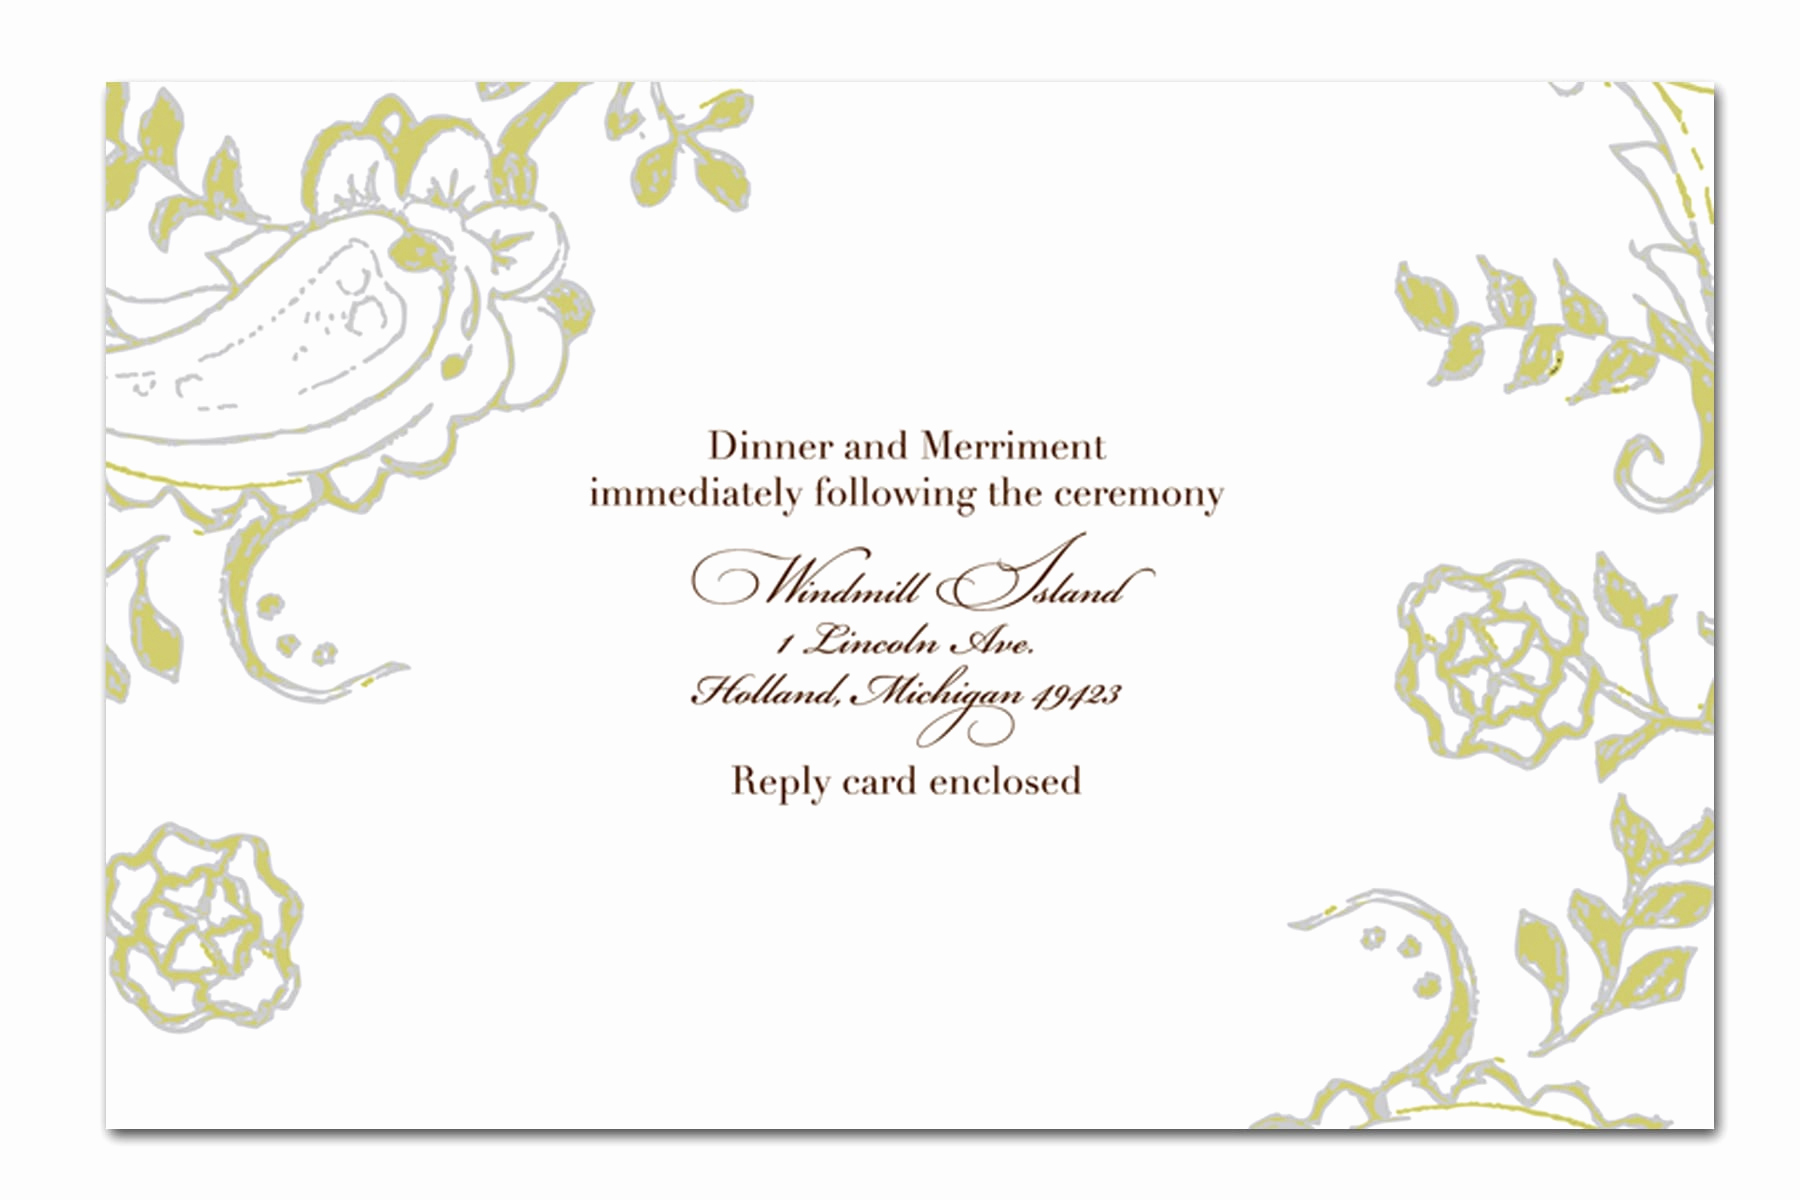 Wedding Invitation Design Templates Best Of Free Wedding Design Invitation Template